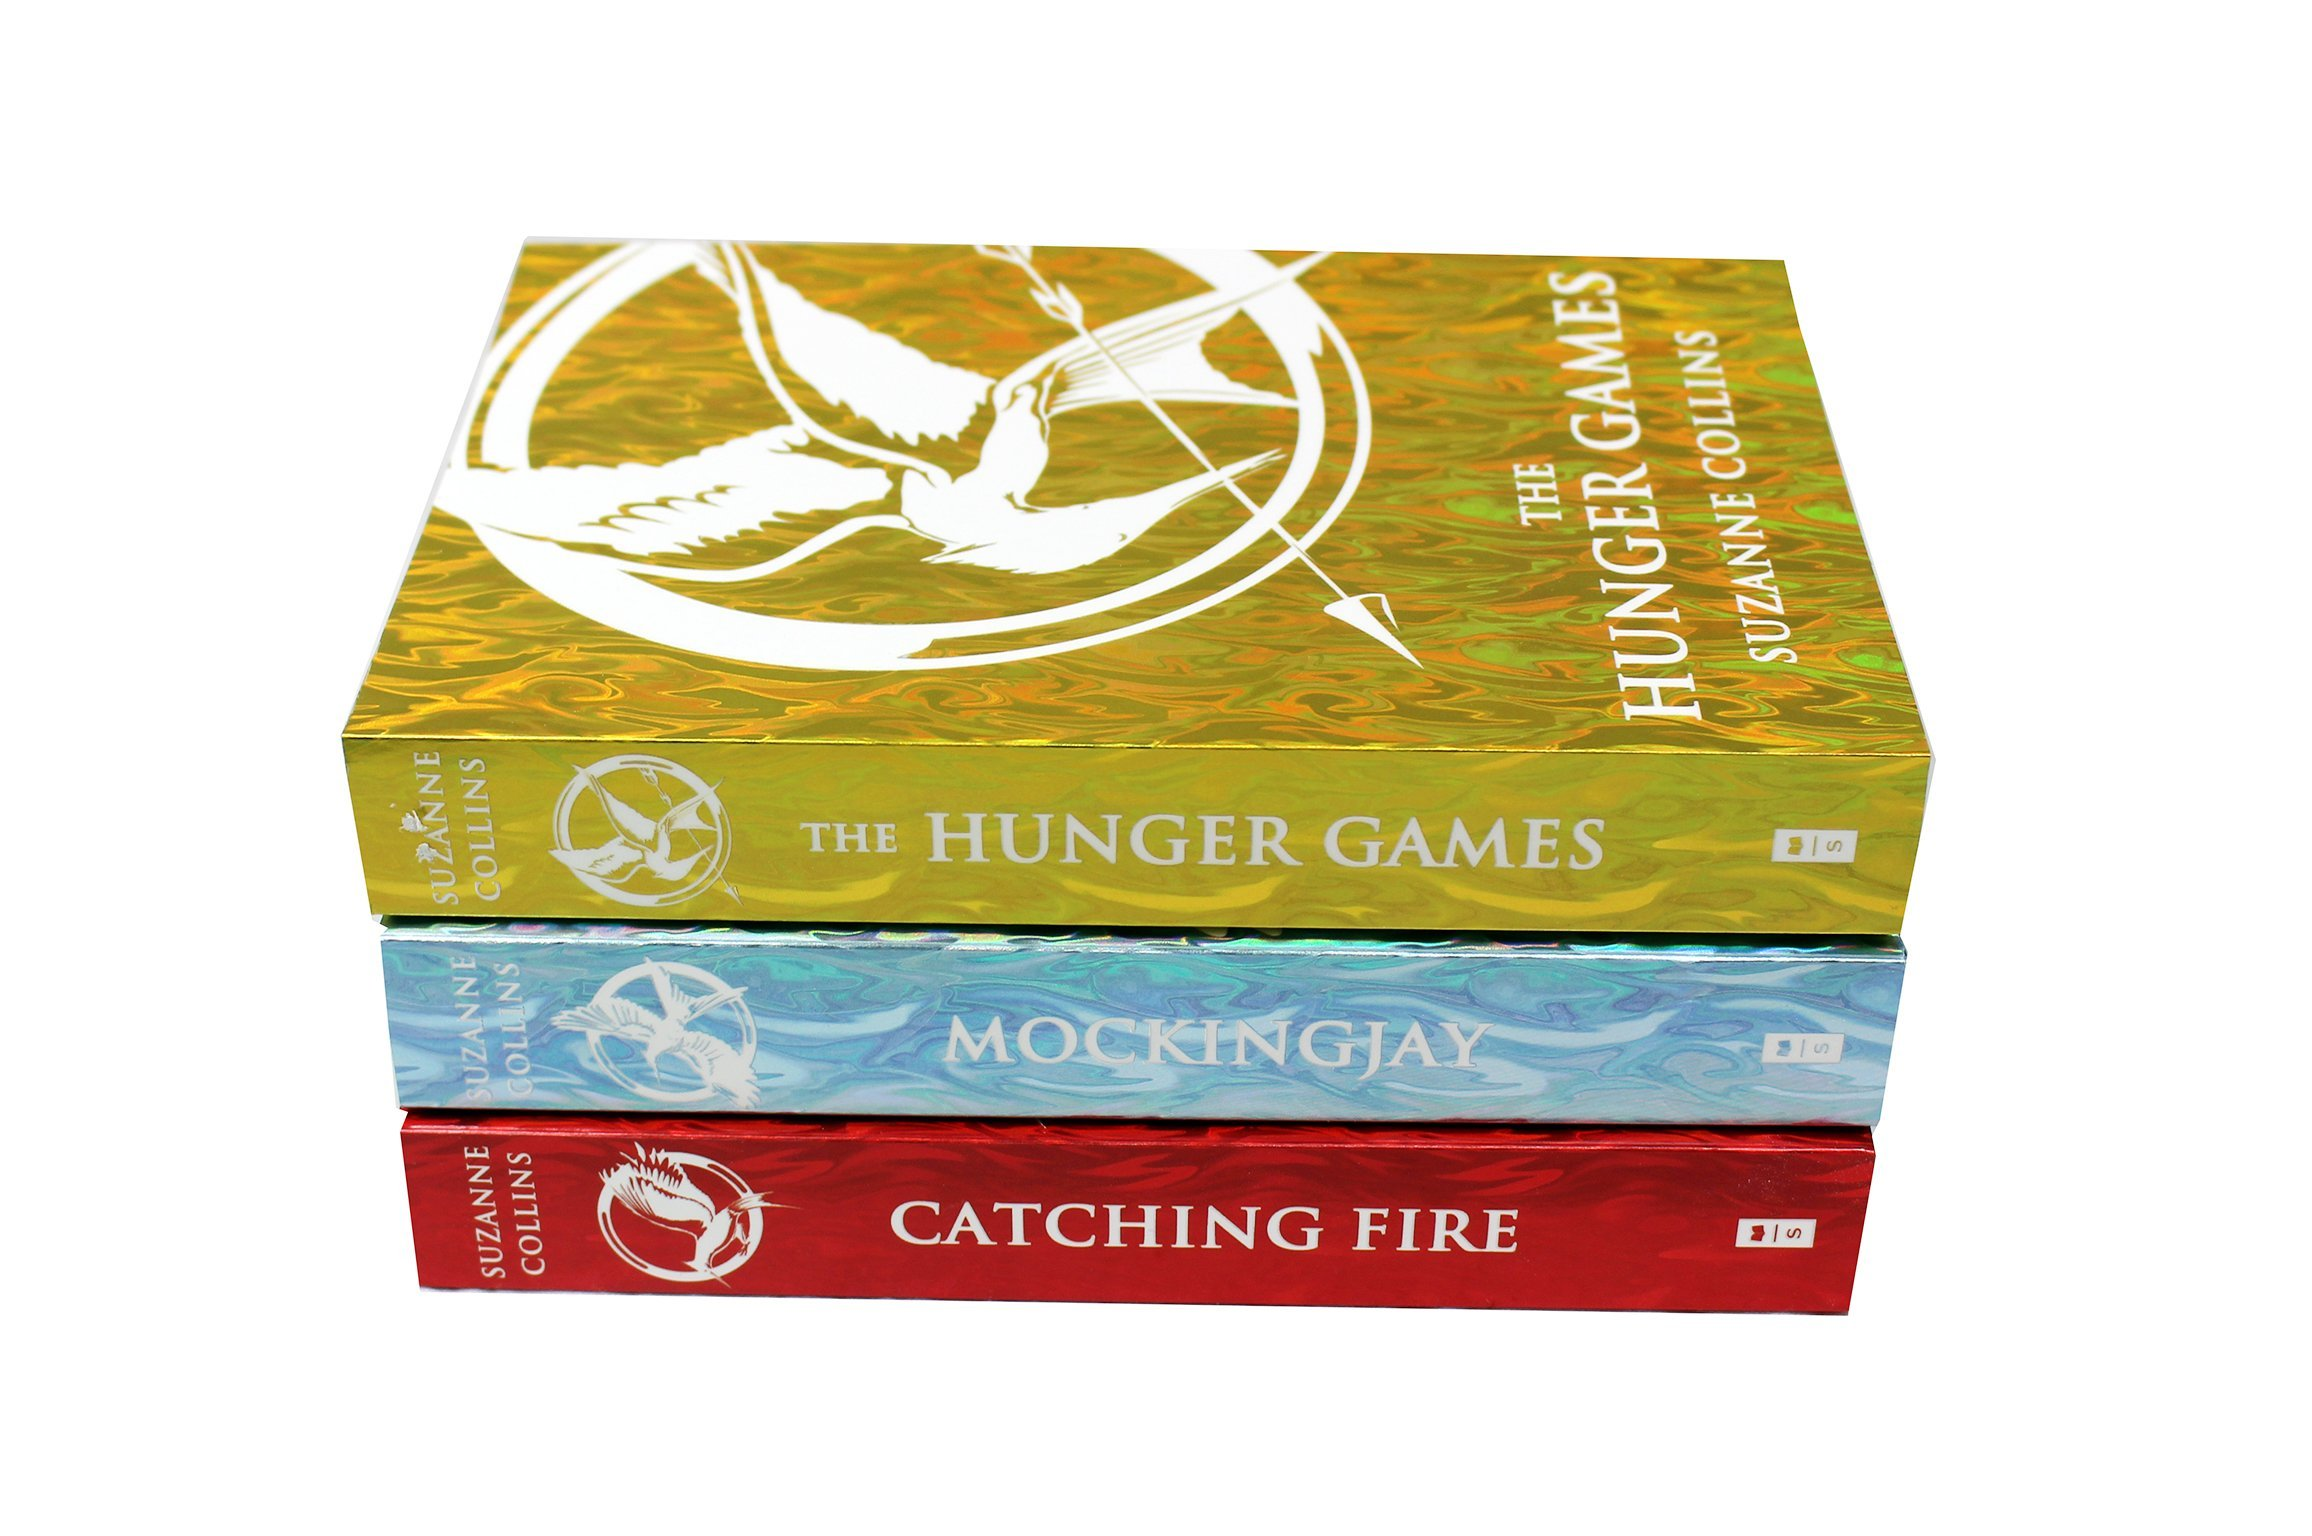 The Hunger Games Trilogy Foil Edition Box Set